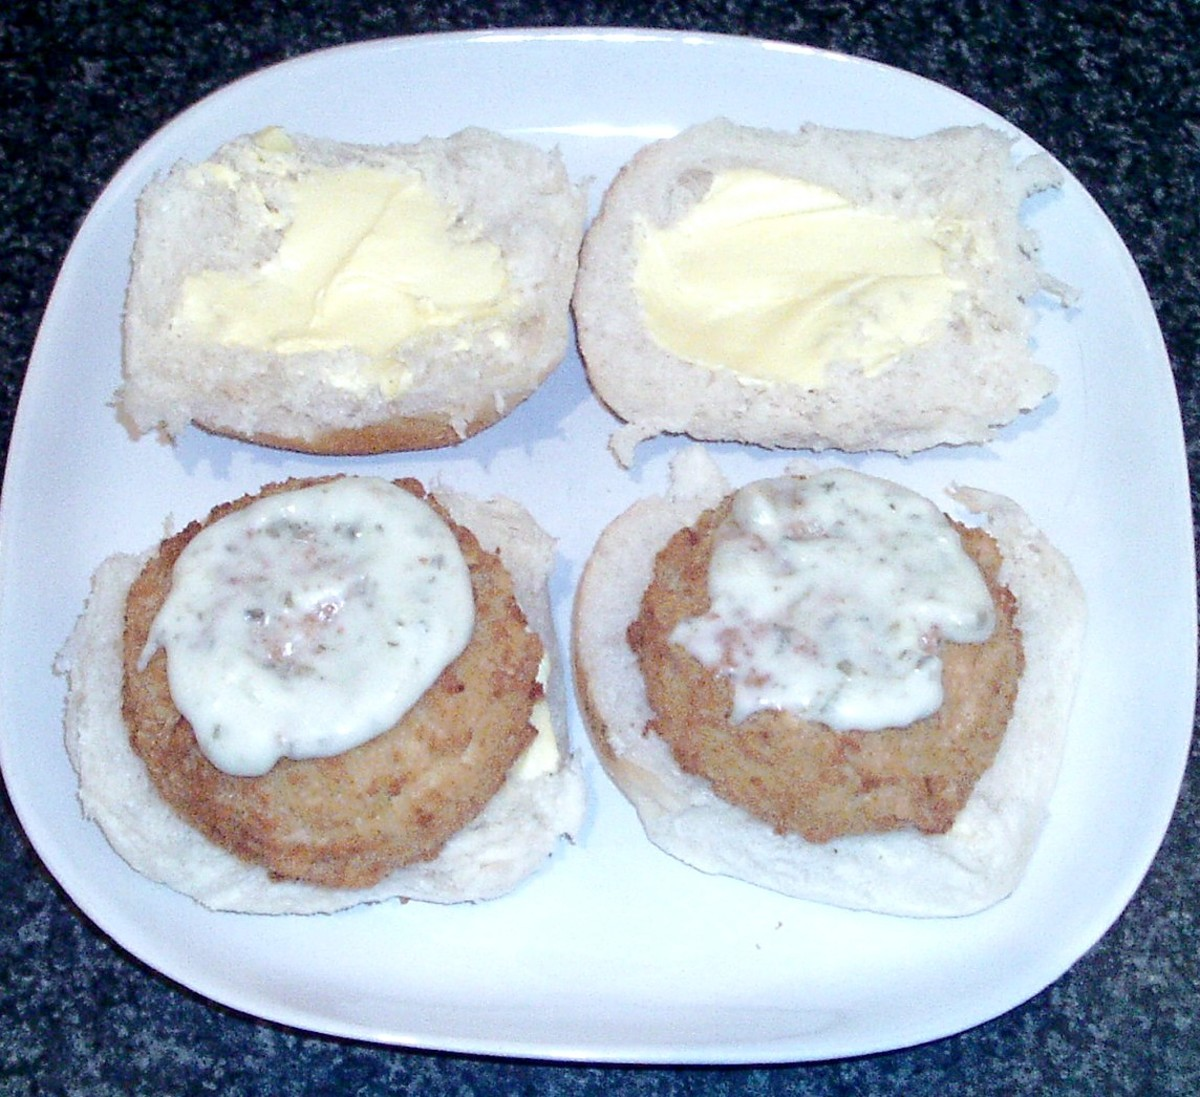 Tartare sauce is spread on smoked haddock fishcakes